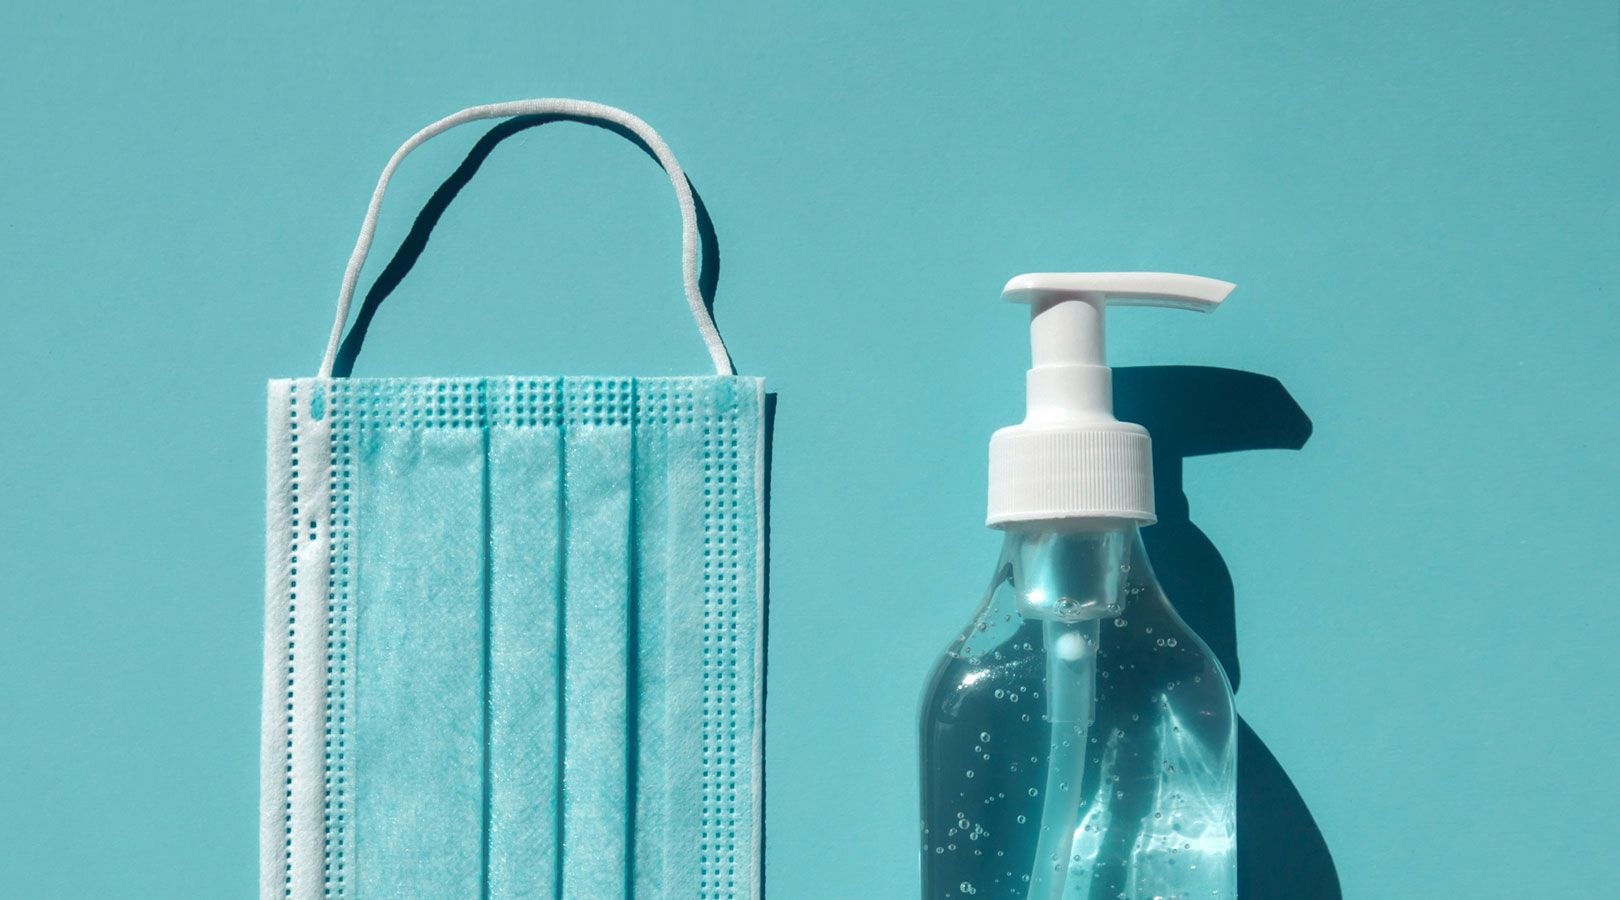 How to Ship Hand Sanitizer